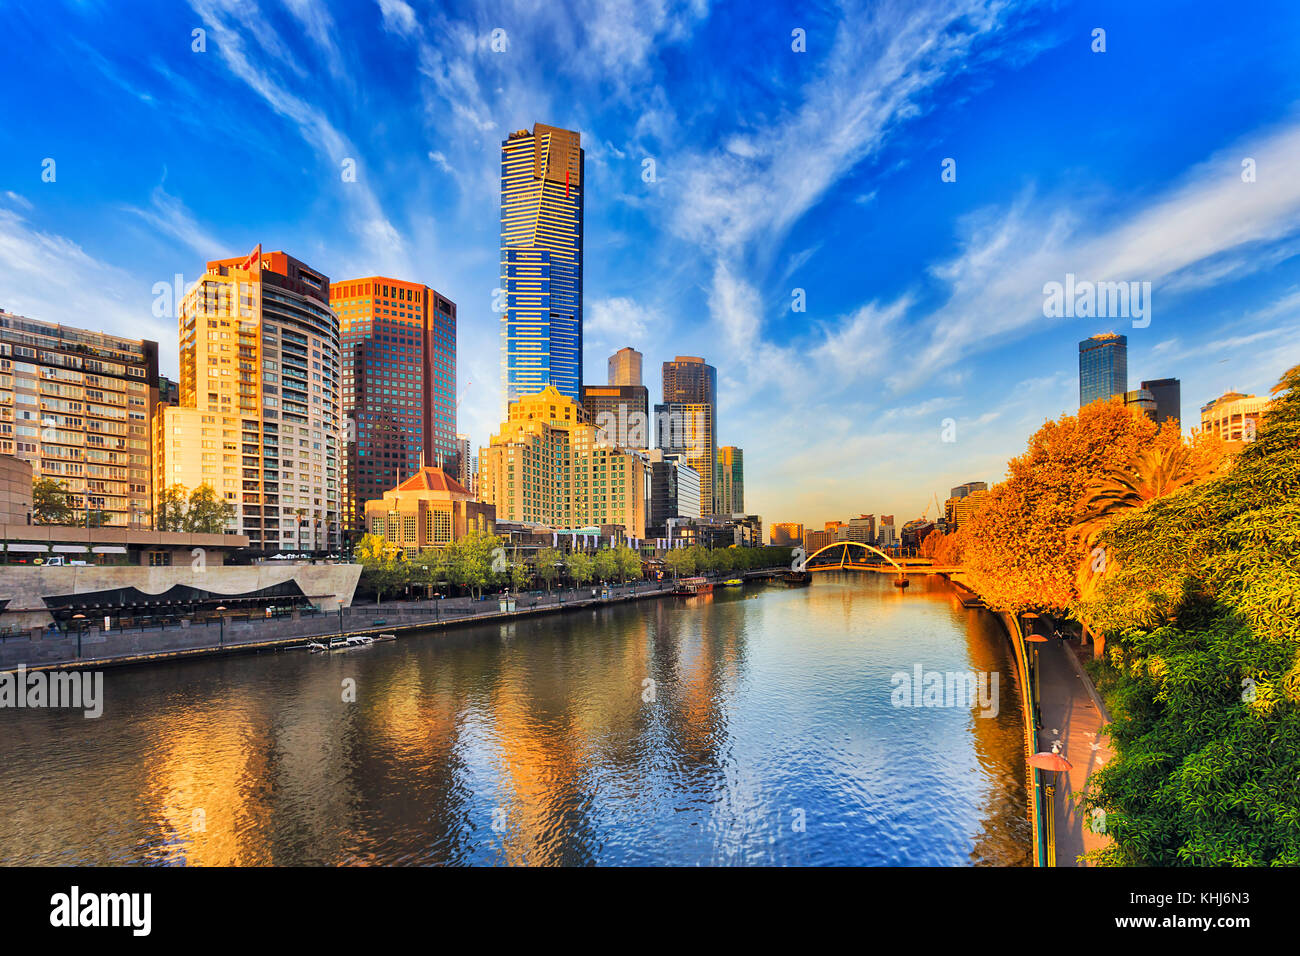 Tallest Melbourne skyscraper Eureka tower dominates South Yarra cityscape over Yarra river in warm morning sunlight Stock Photo